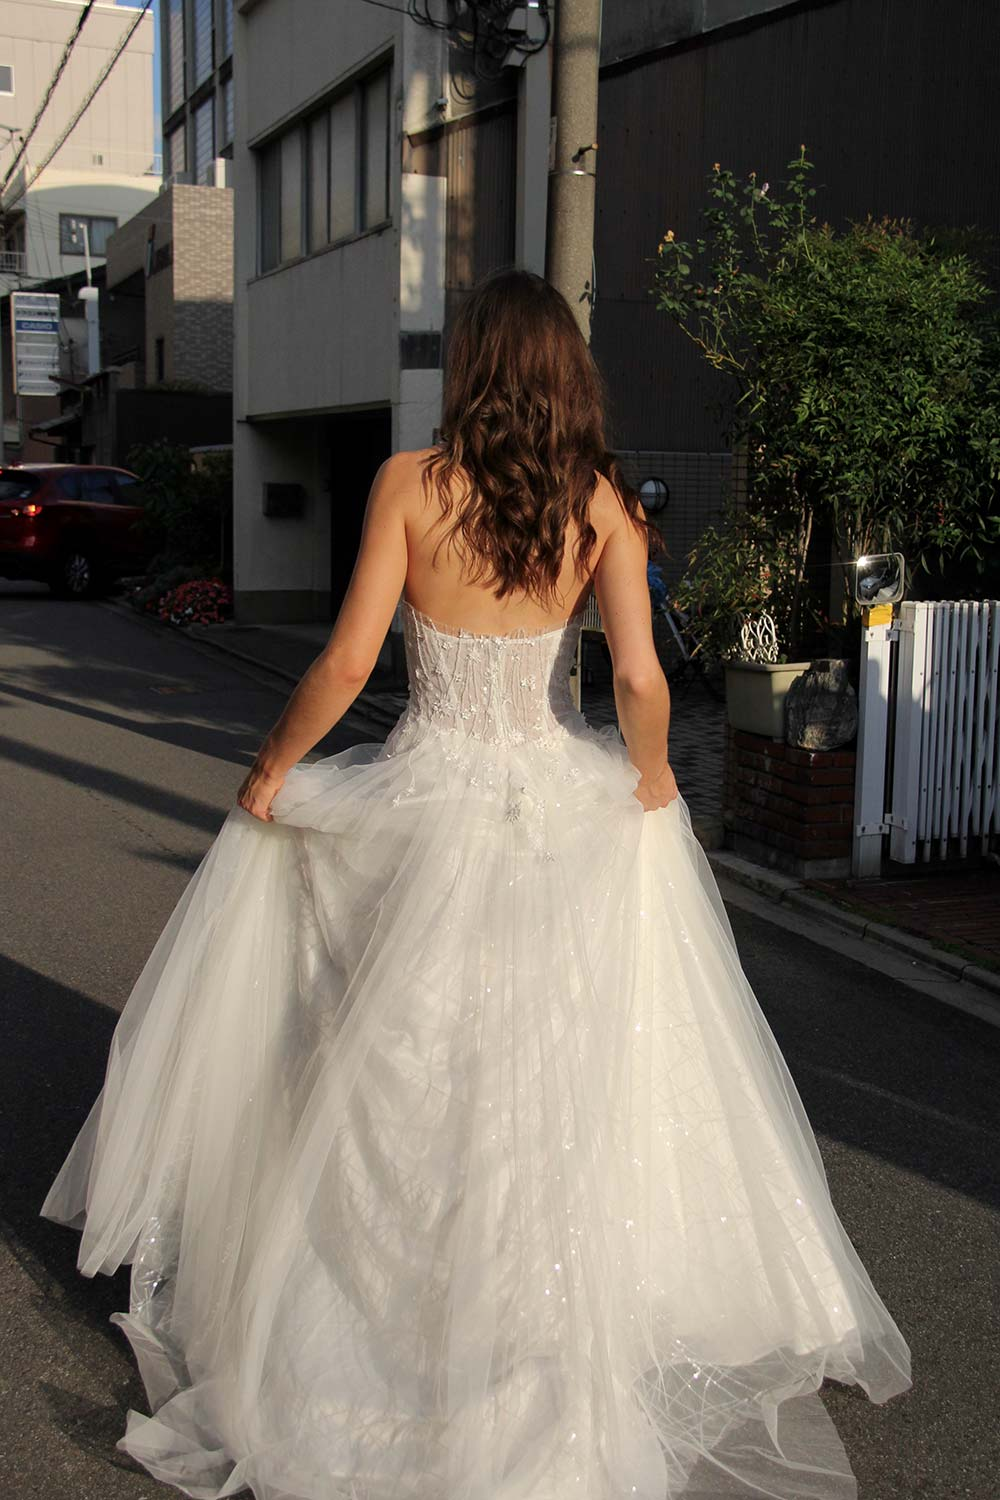 Female model wearing Vinka Design An Oriental Affair Wedding Dress. On a japanese street the back detail of a semi-sheer bodice with boning and hand-appliqued lace and skirt made with multiple layers of tulle